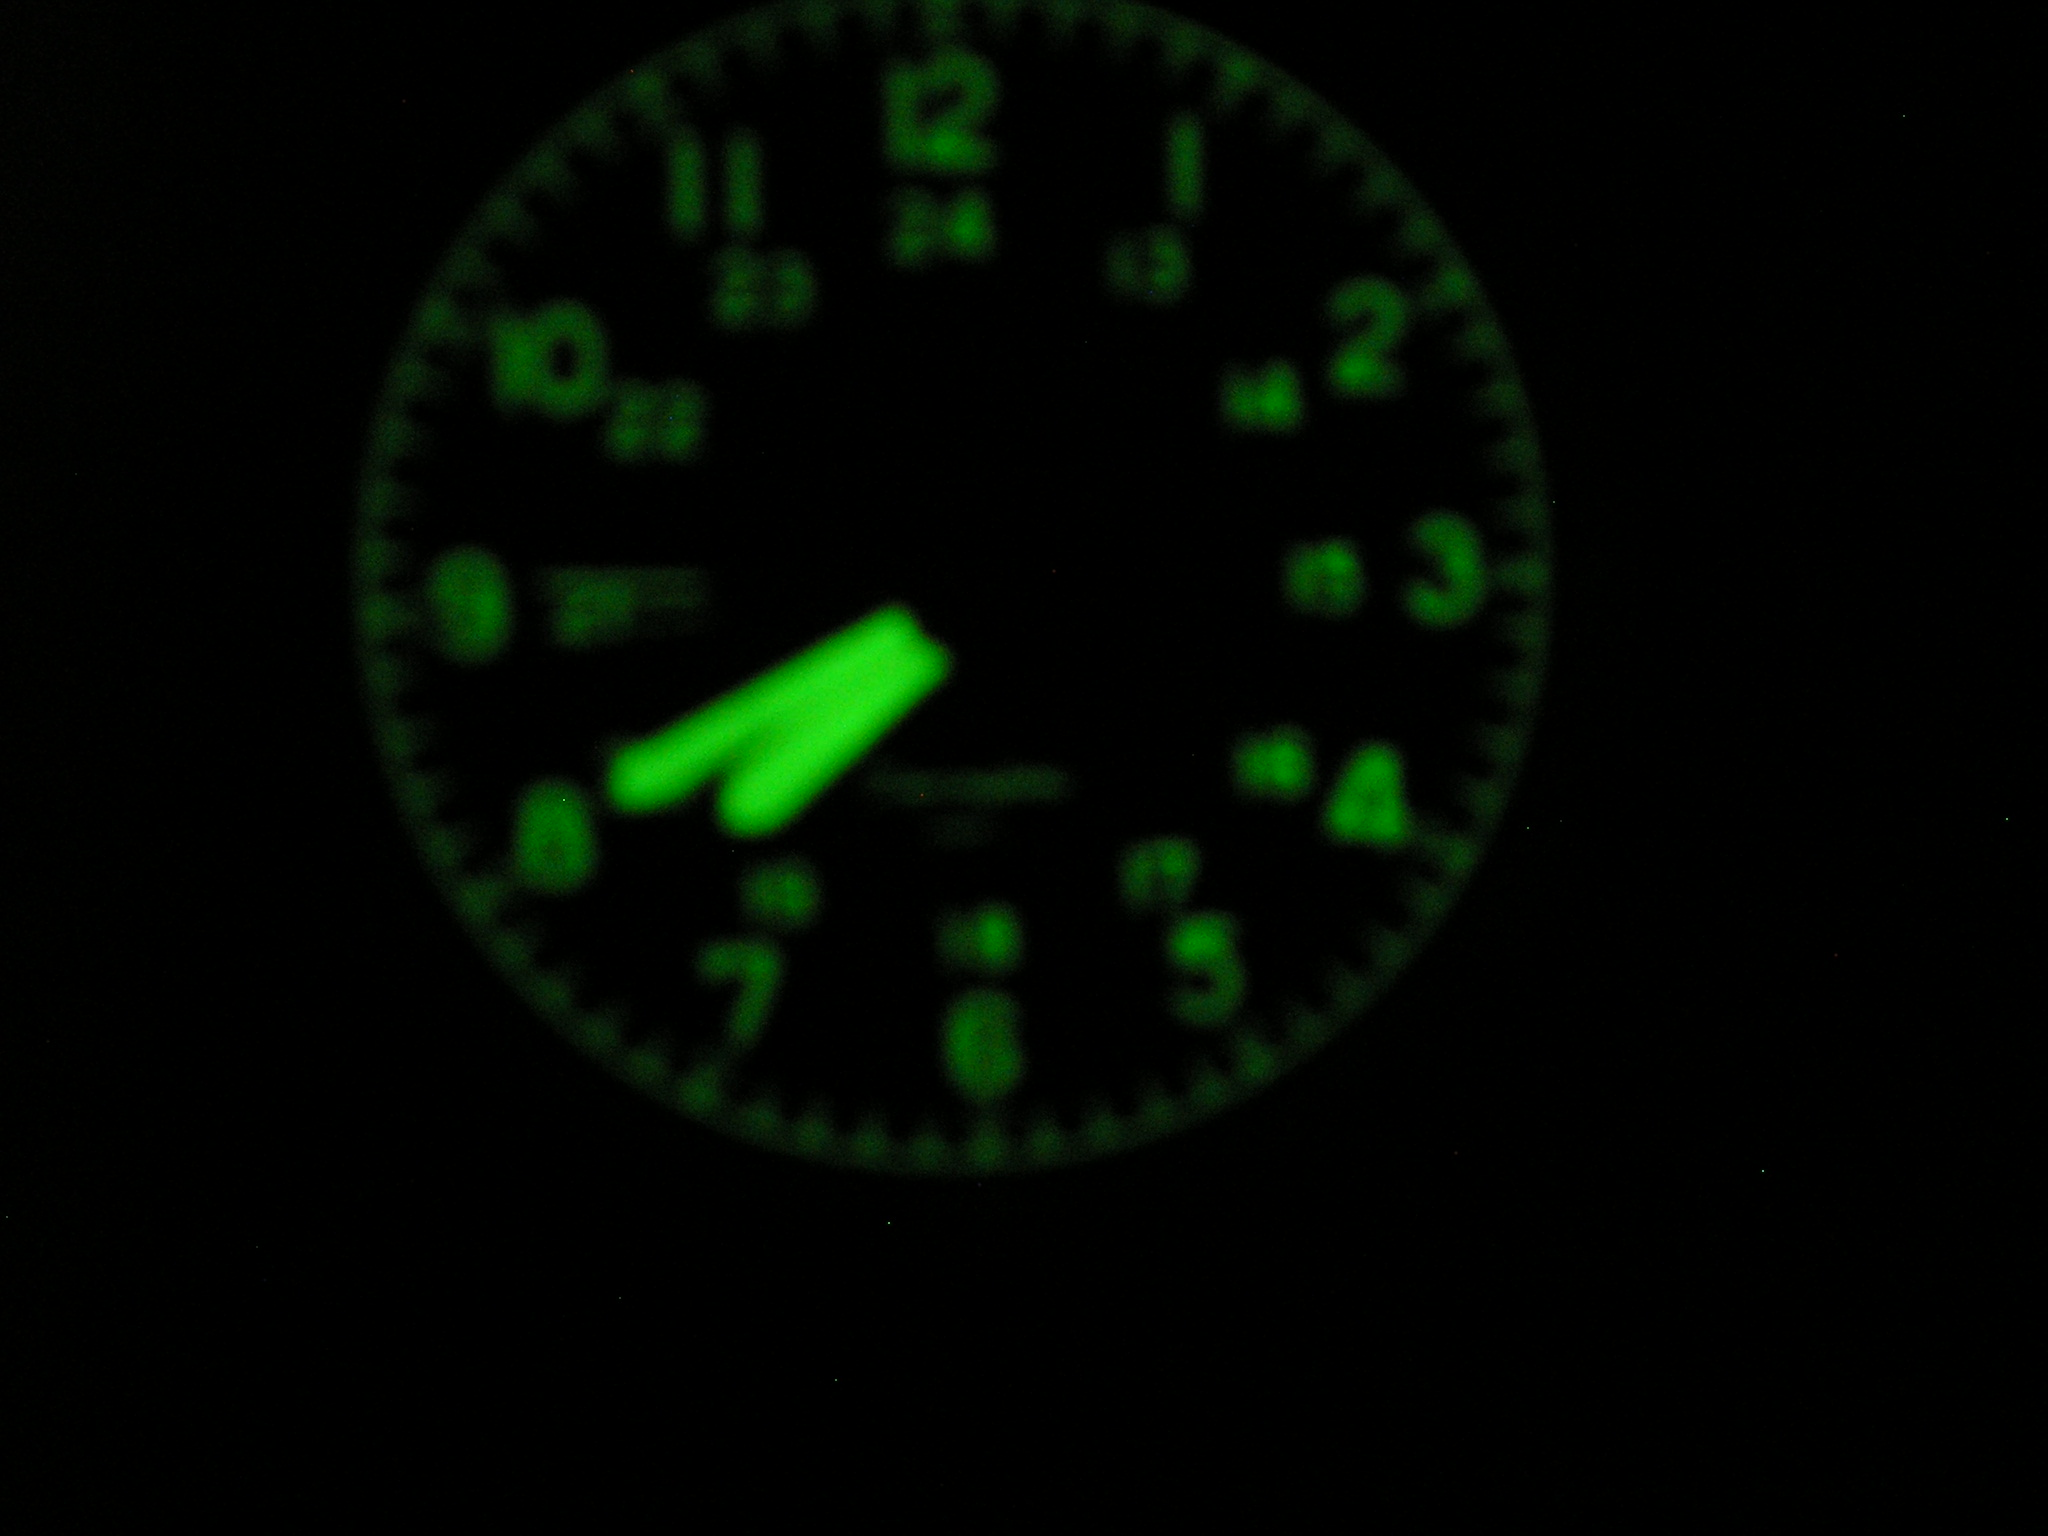 Military clock face after UV light exitation